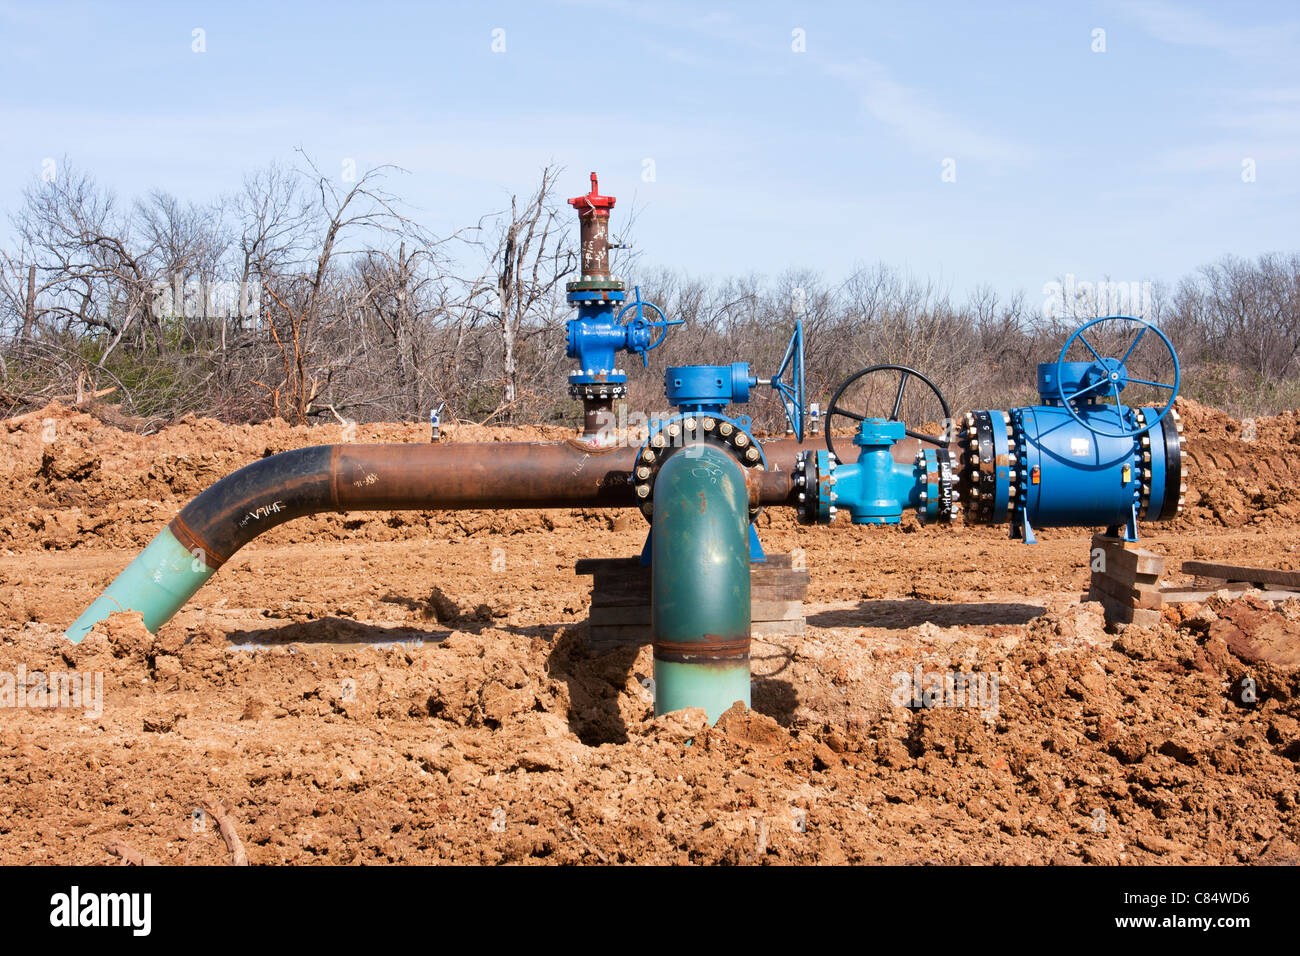 Gas valves are required at various areas to stop the flow of natural gas in pipelines in the North Texas. Stock Photo